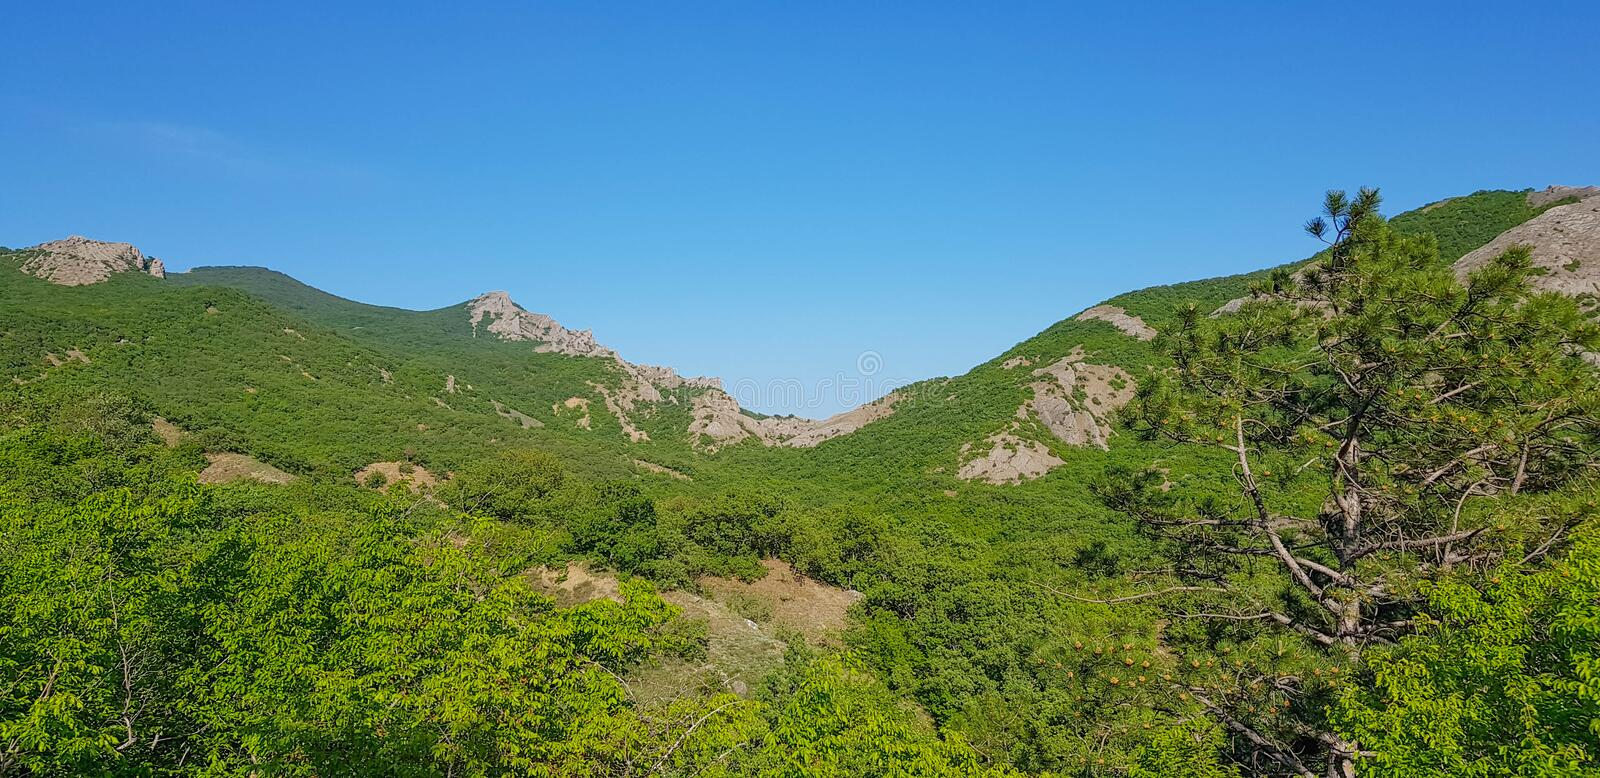 Landscape of Mount Dina on the Crimean coast royalty free stock photography